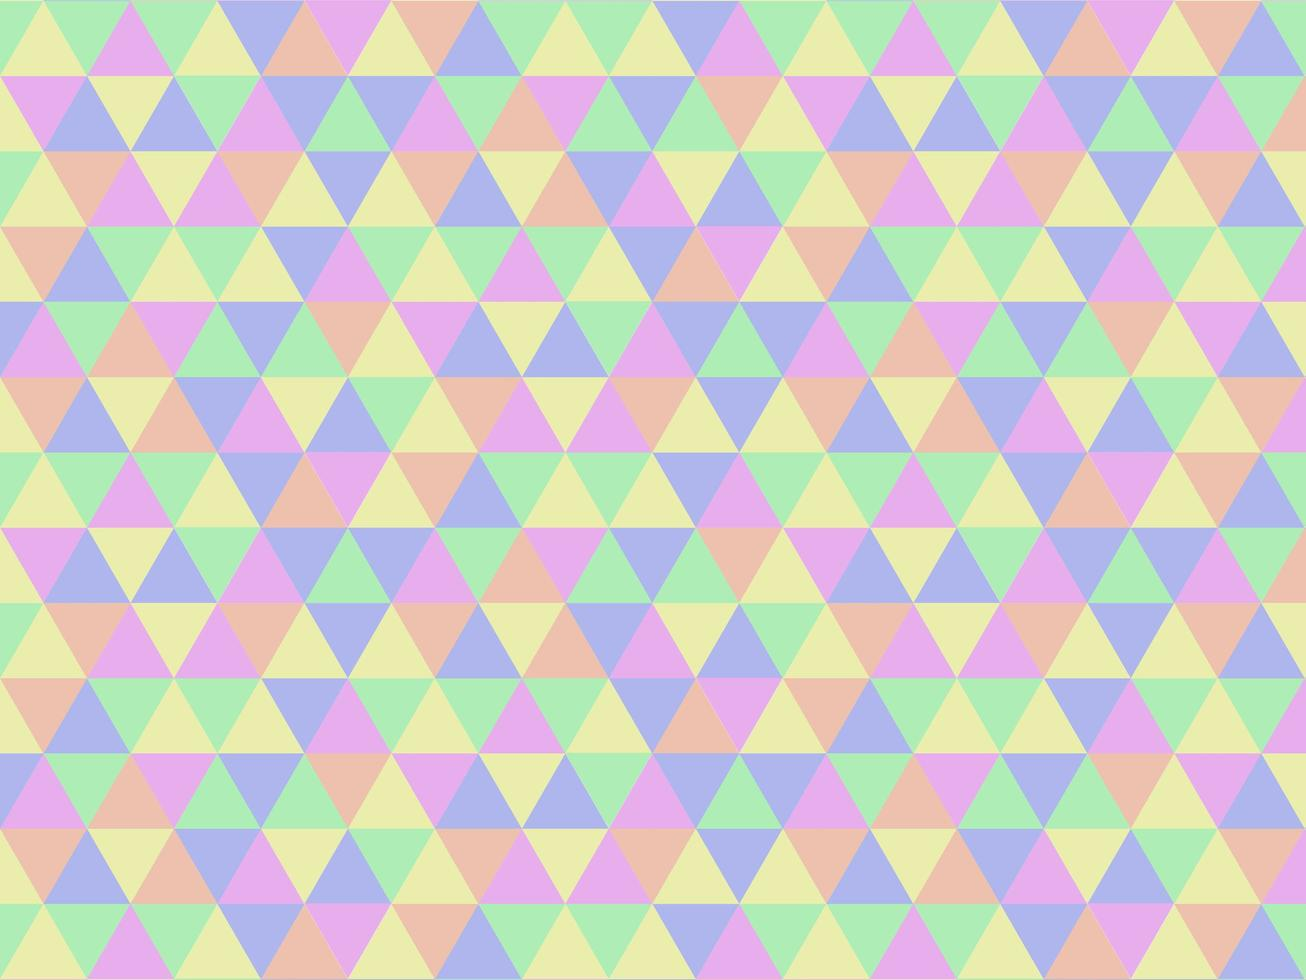 Abstract Pastel Colorful Geometric Triangle Pattern Background vector